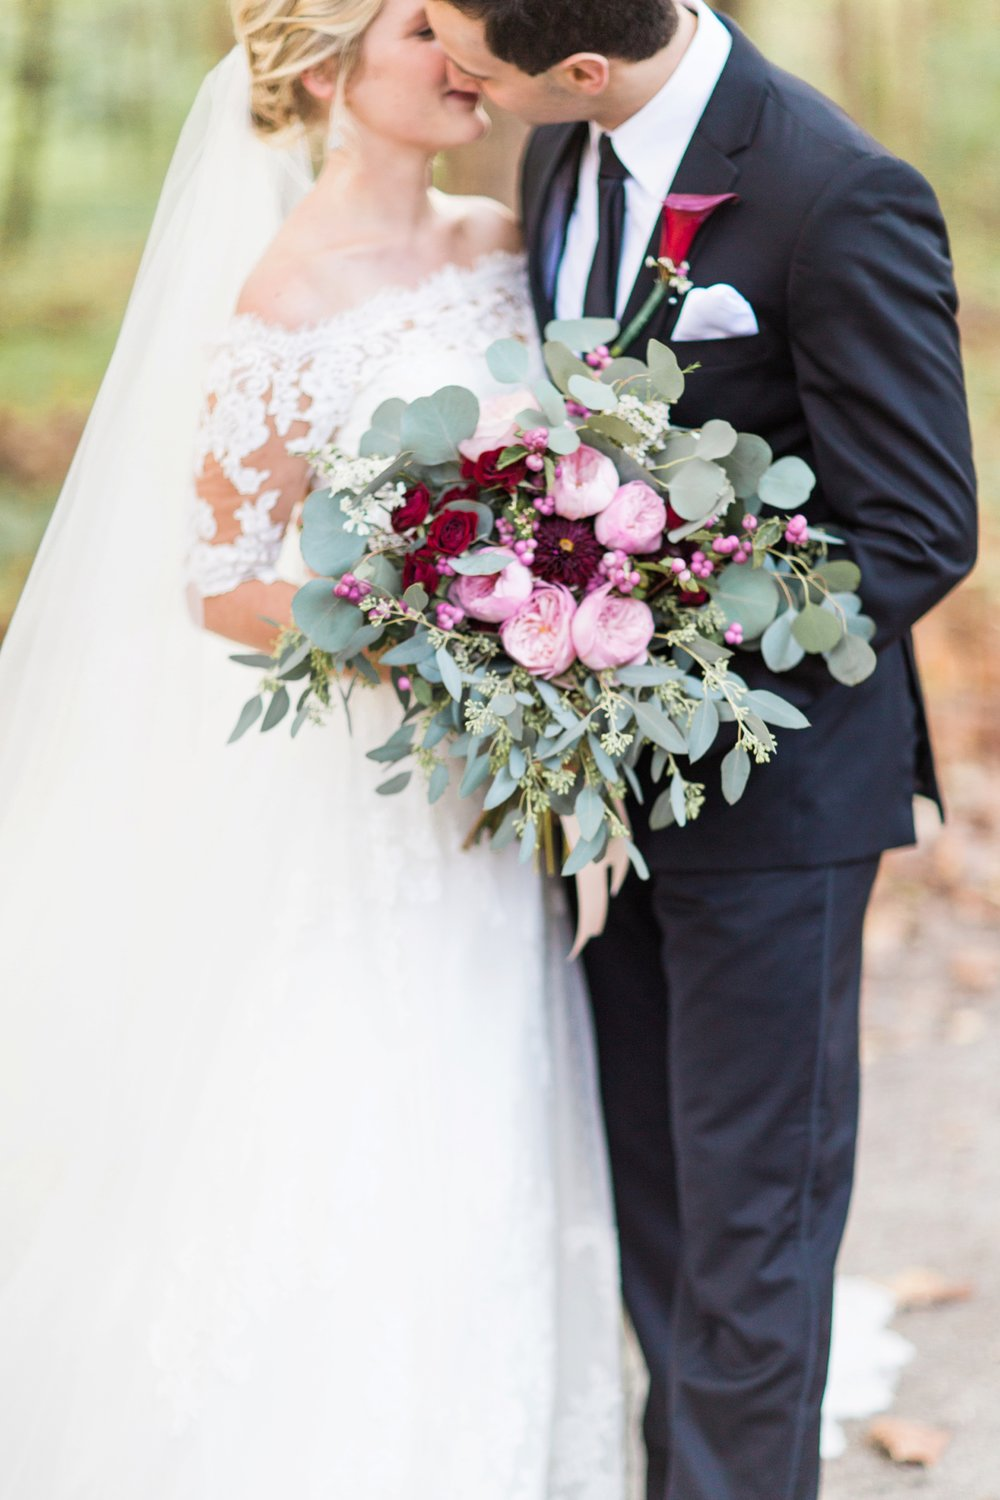 Joe-Katie-Stylish-Elegant-Blush-Gold-Fall-Indiana-Film-Wedding-Photographer_8056.jpg